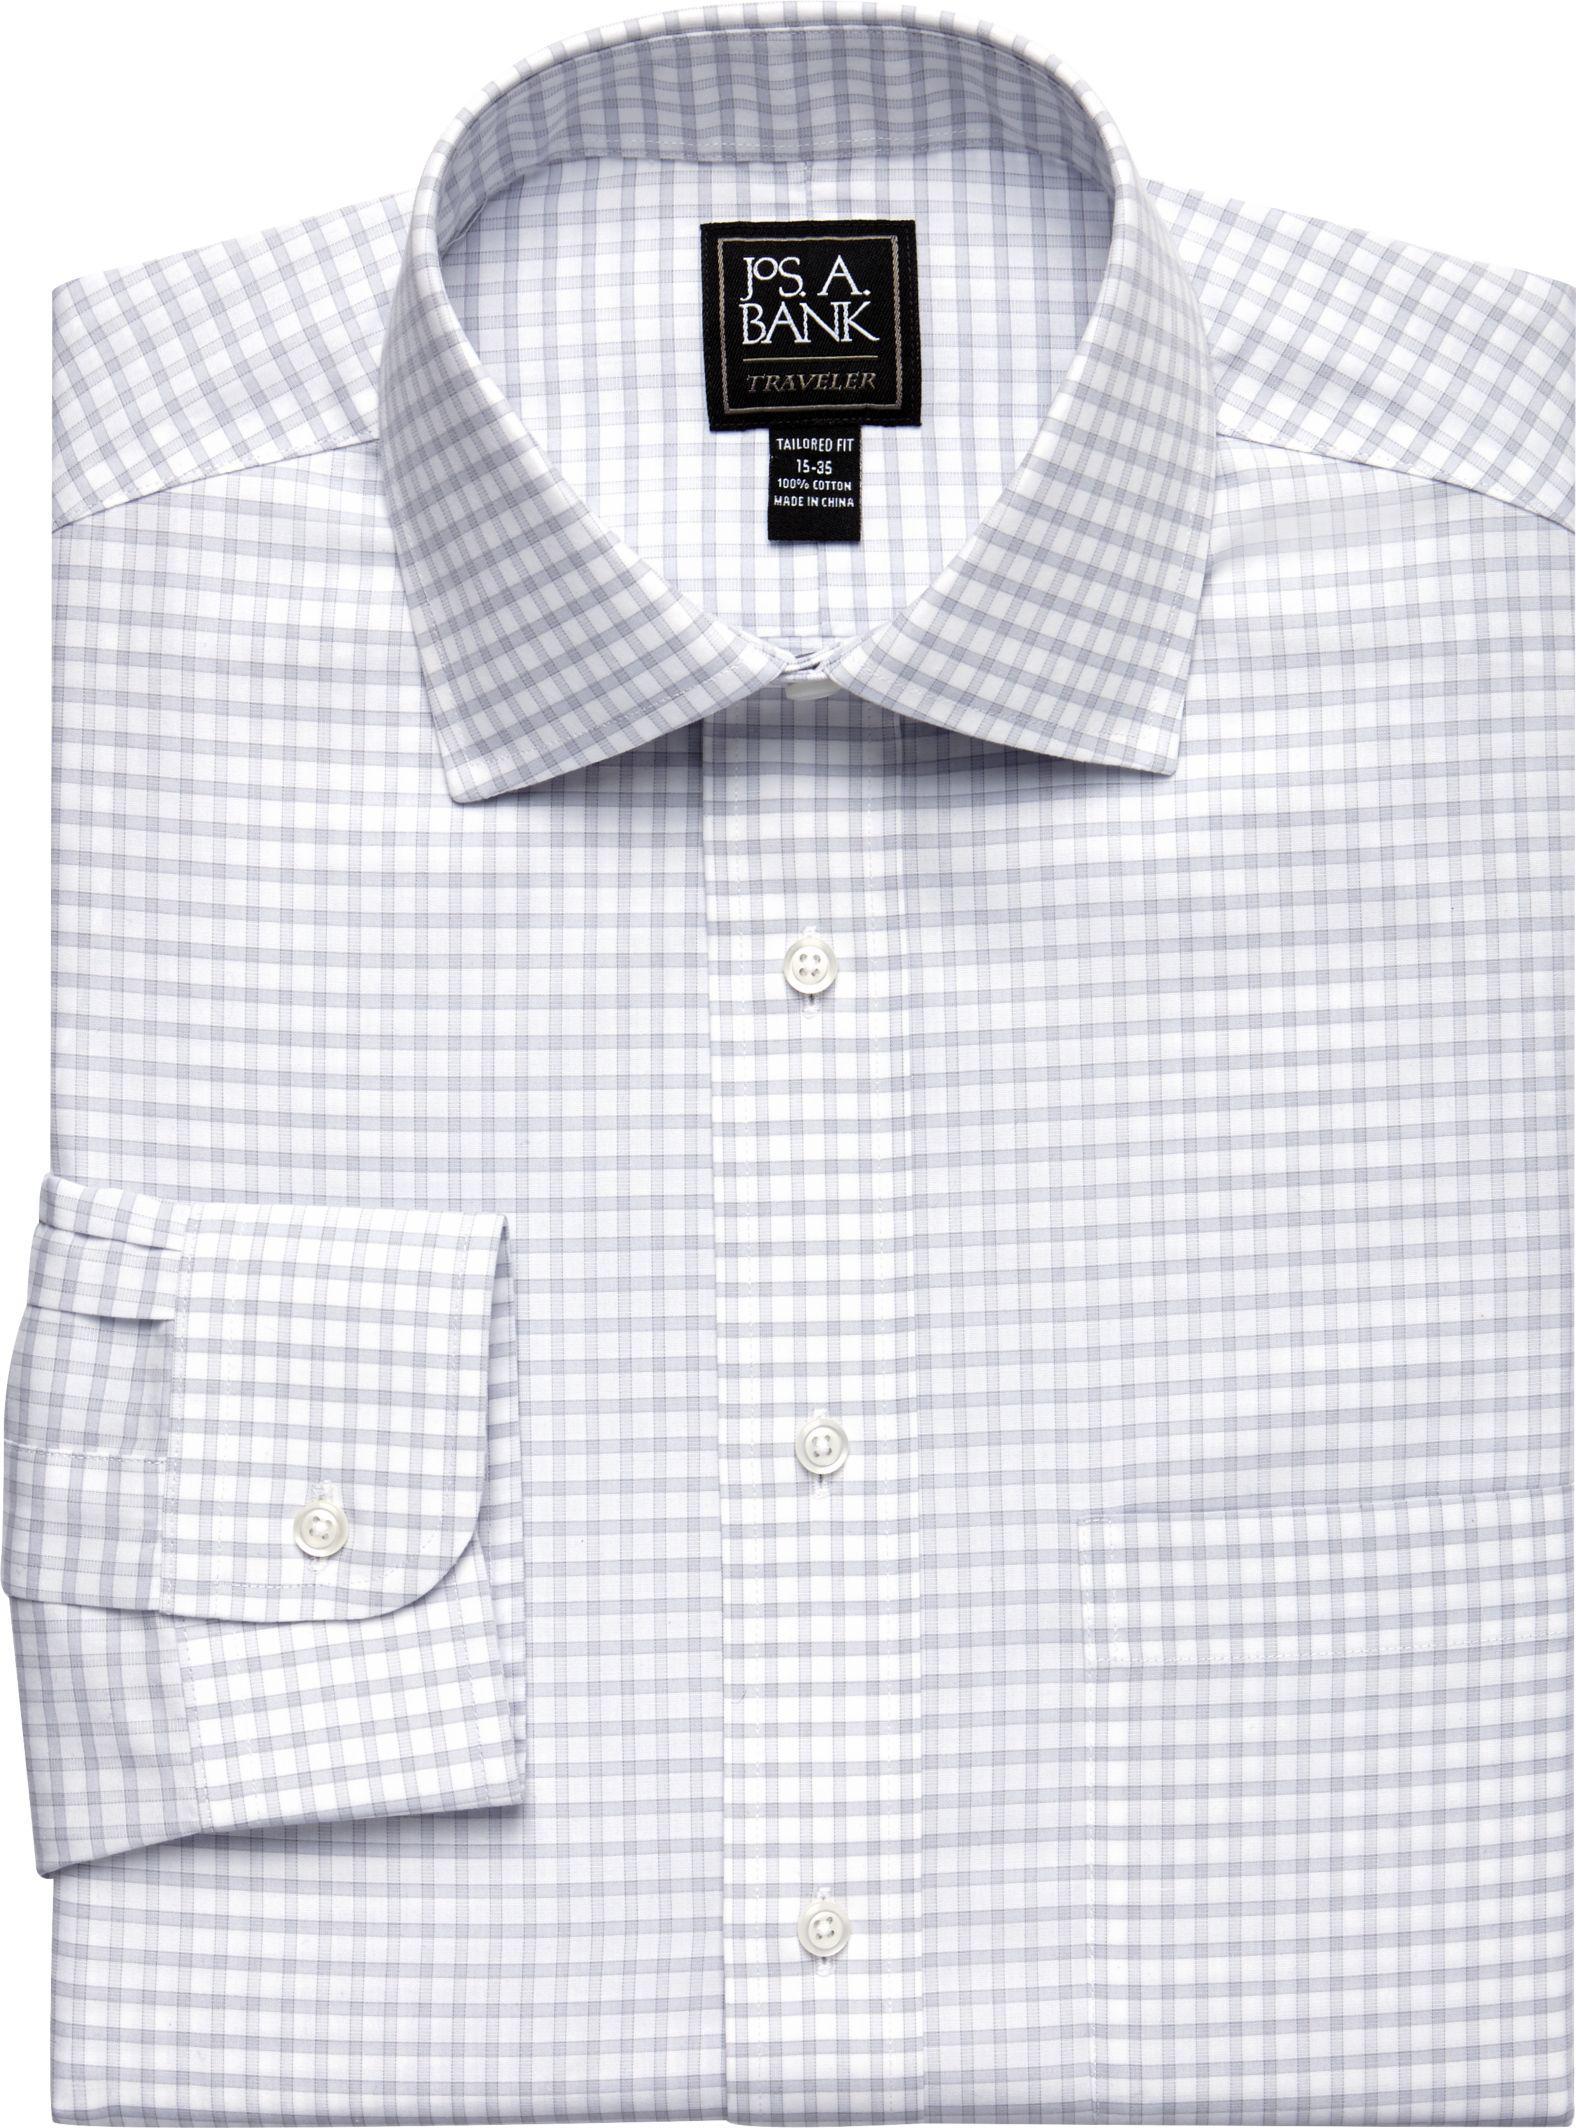 Jos a bank traveller collection tailored fit spread for Jos a bank slim fit vs tailored fit shirts